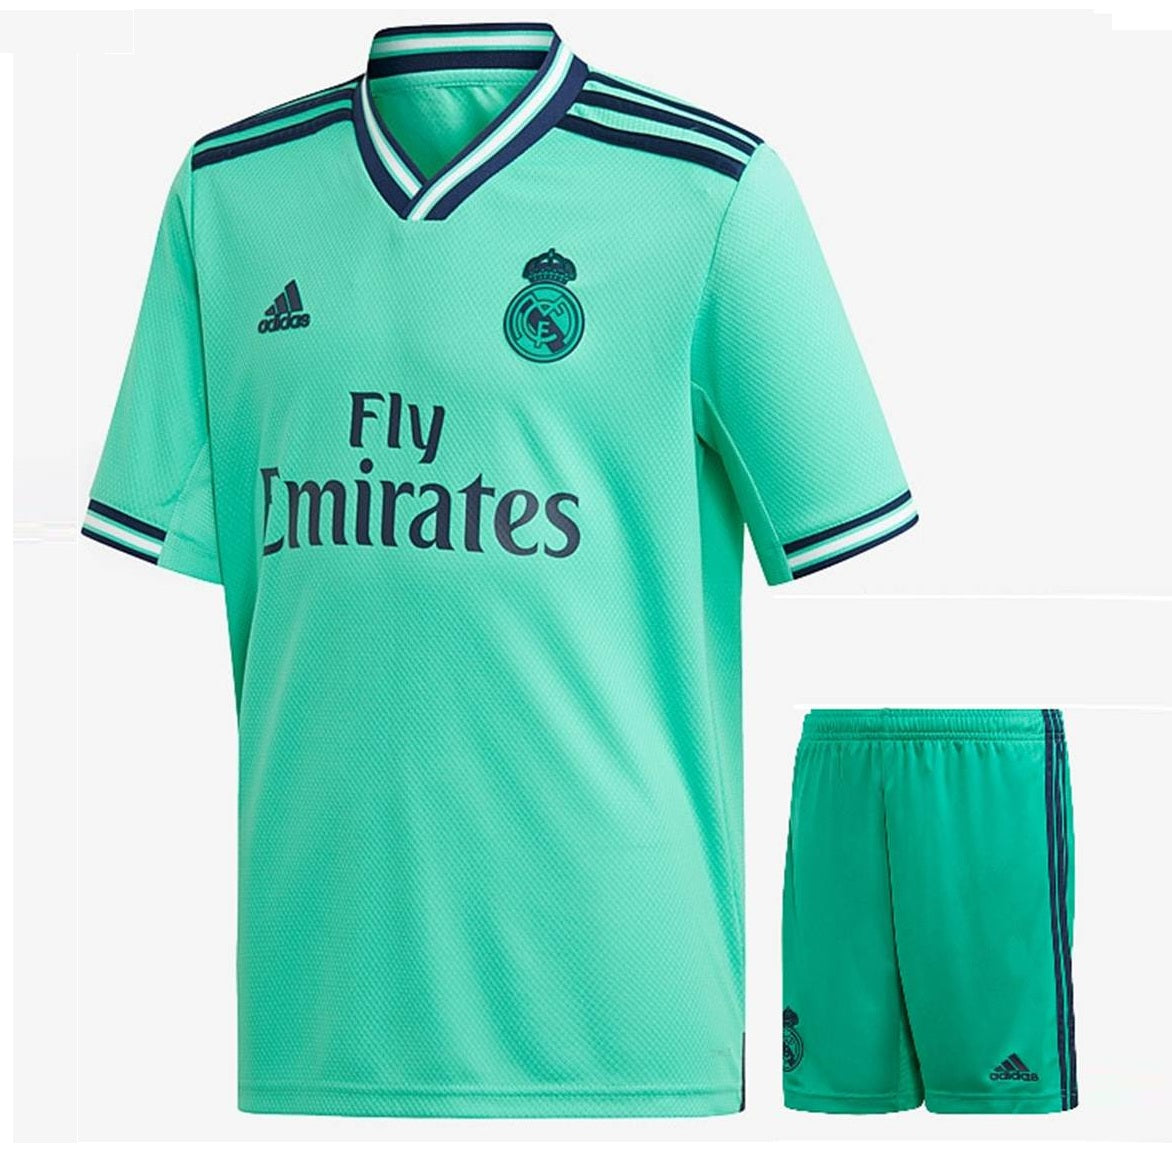 low priced 7658f 4cdf2 Kids/Youth Original Real Madrid 3rd Premium Home Jersey & Shorts 2019/20